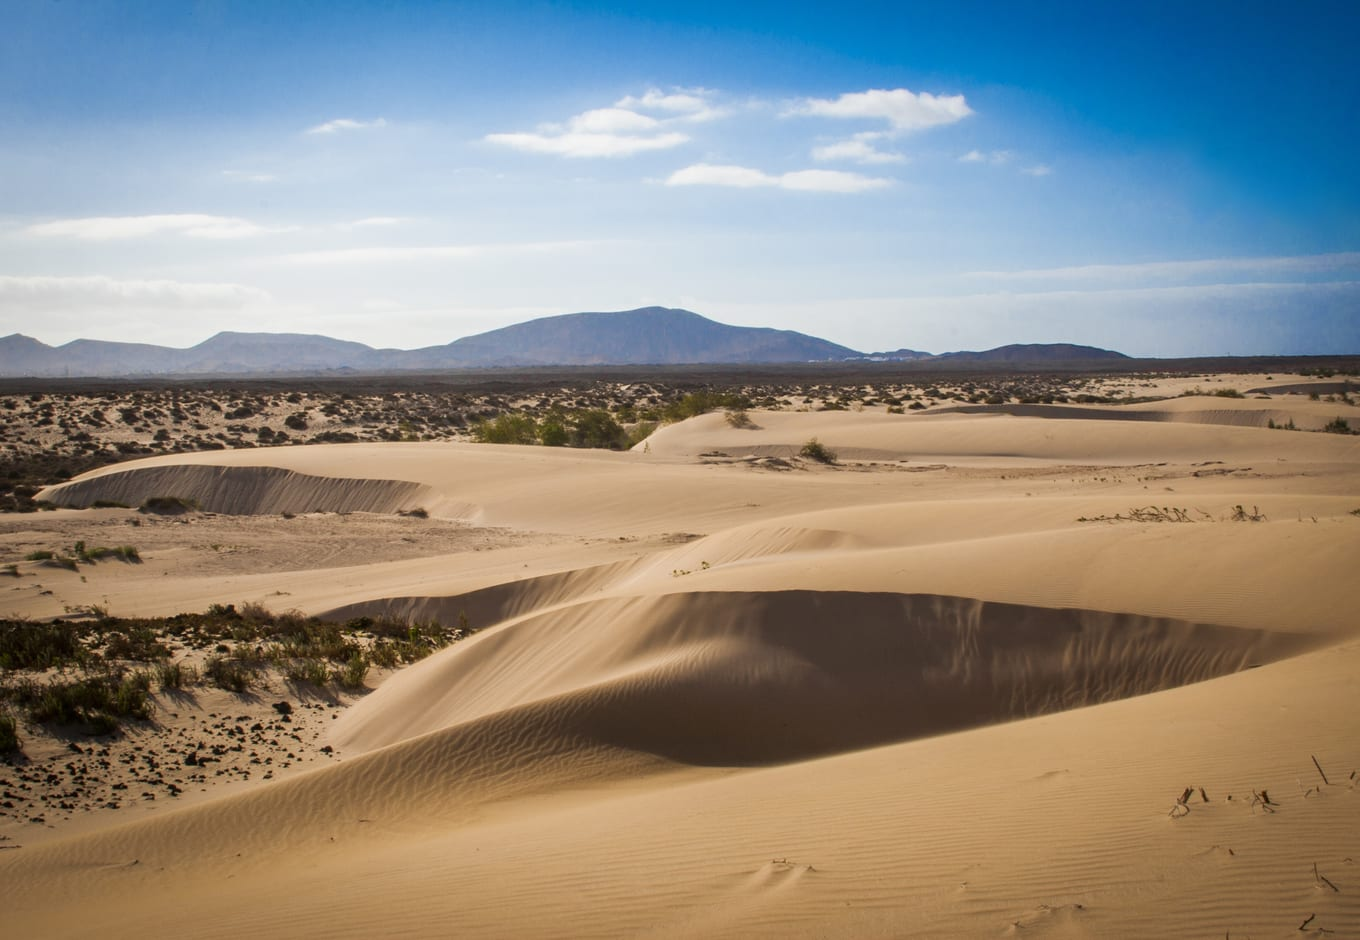 The Sand Dunes at the Corralejo  Park, in the Canary Islands, Spain.